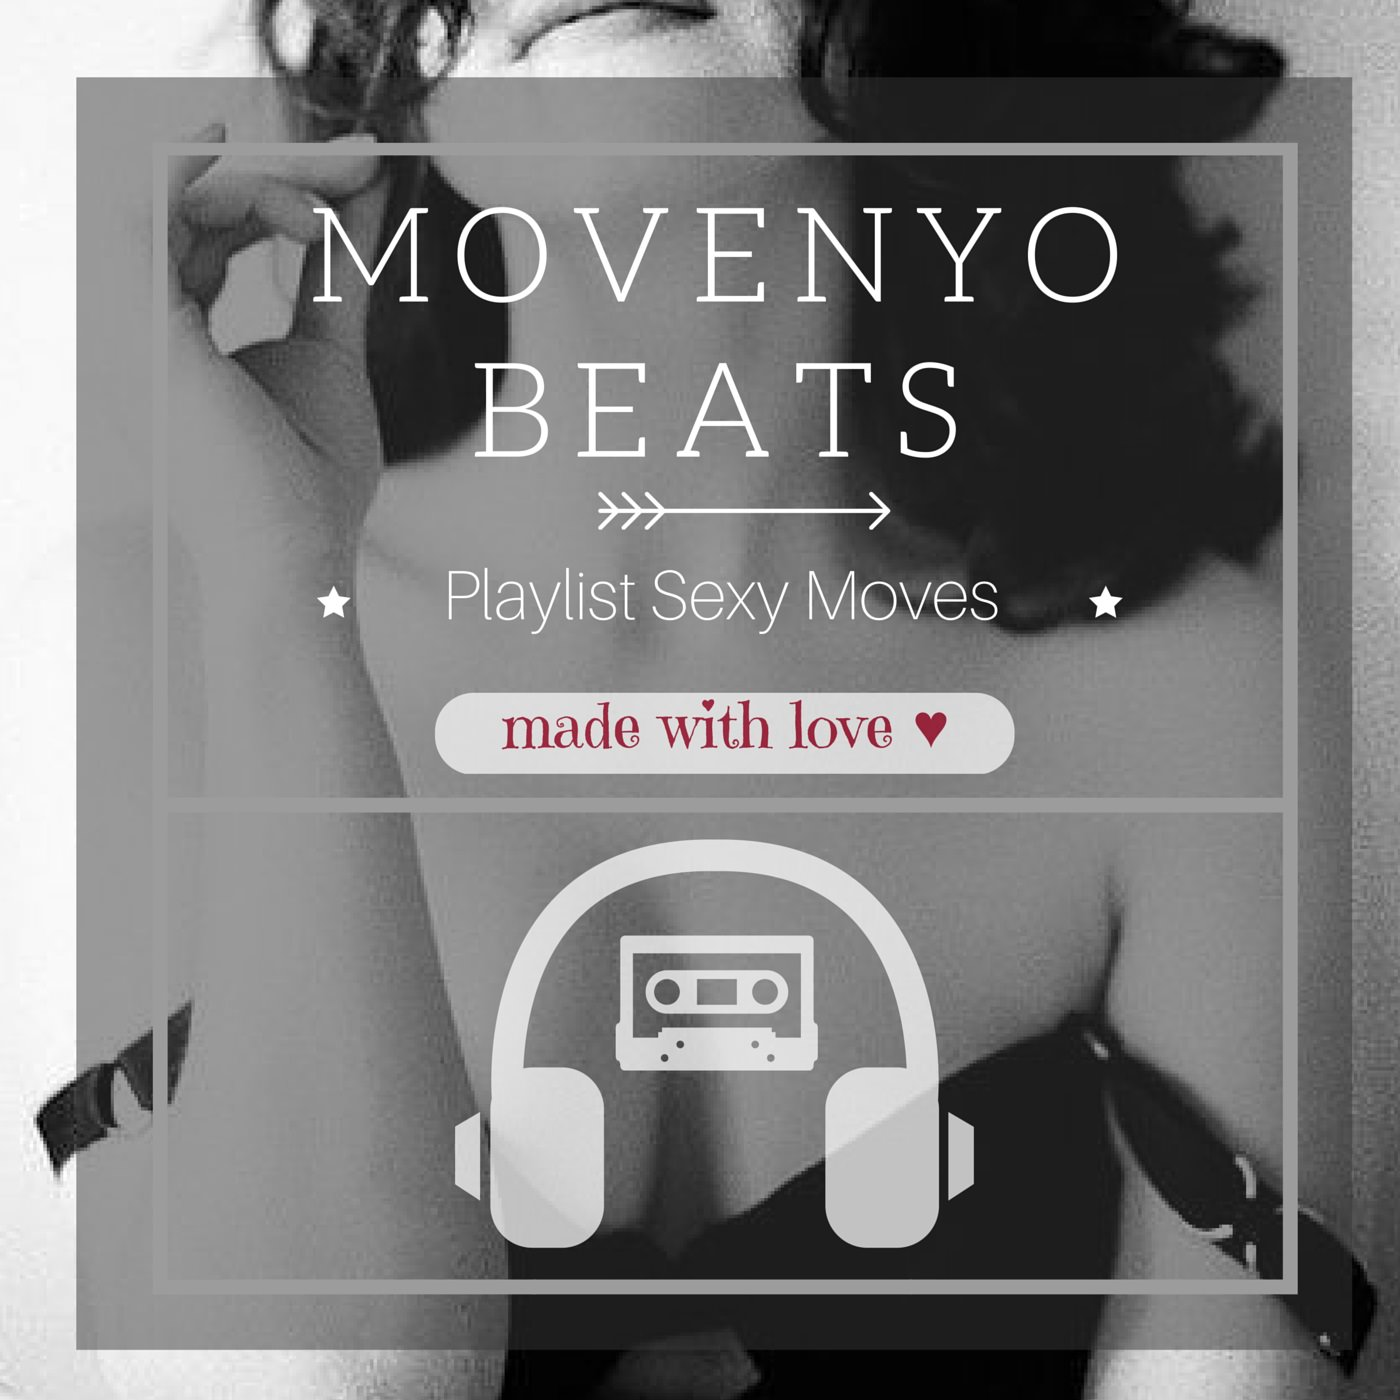 20160528 movenyo Playlist Sexy Moves Bild